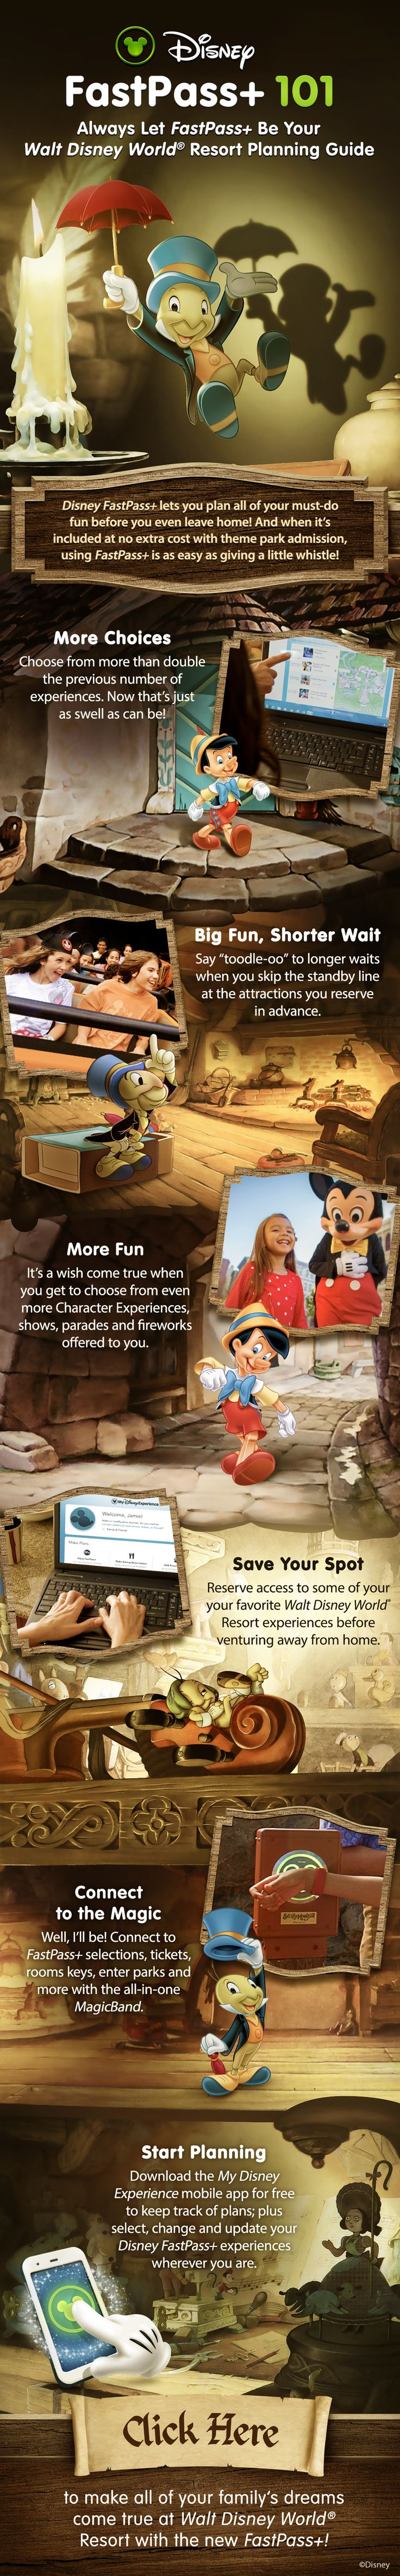 Everything you need to know about FastPass+ at Walt Disney World!